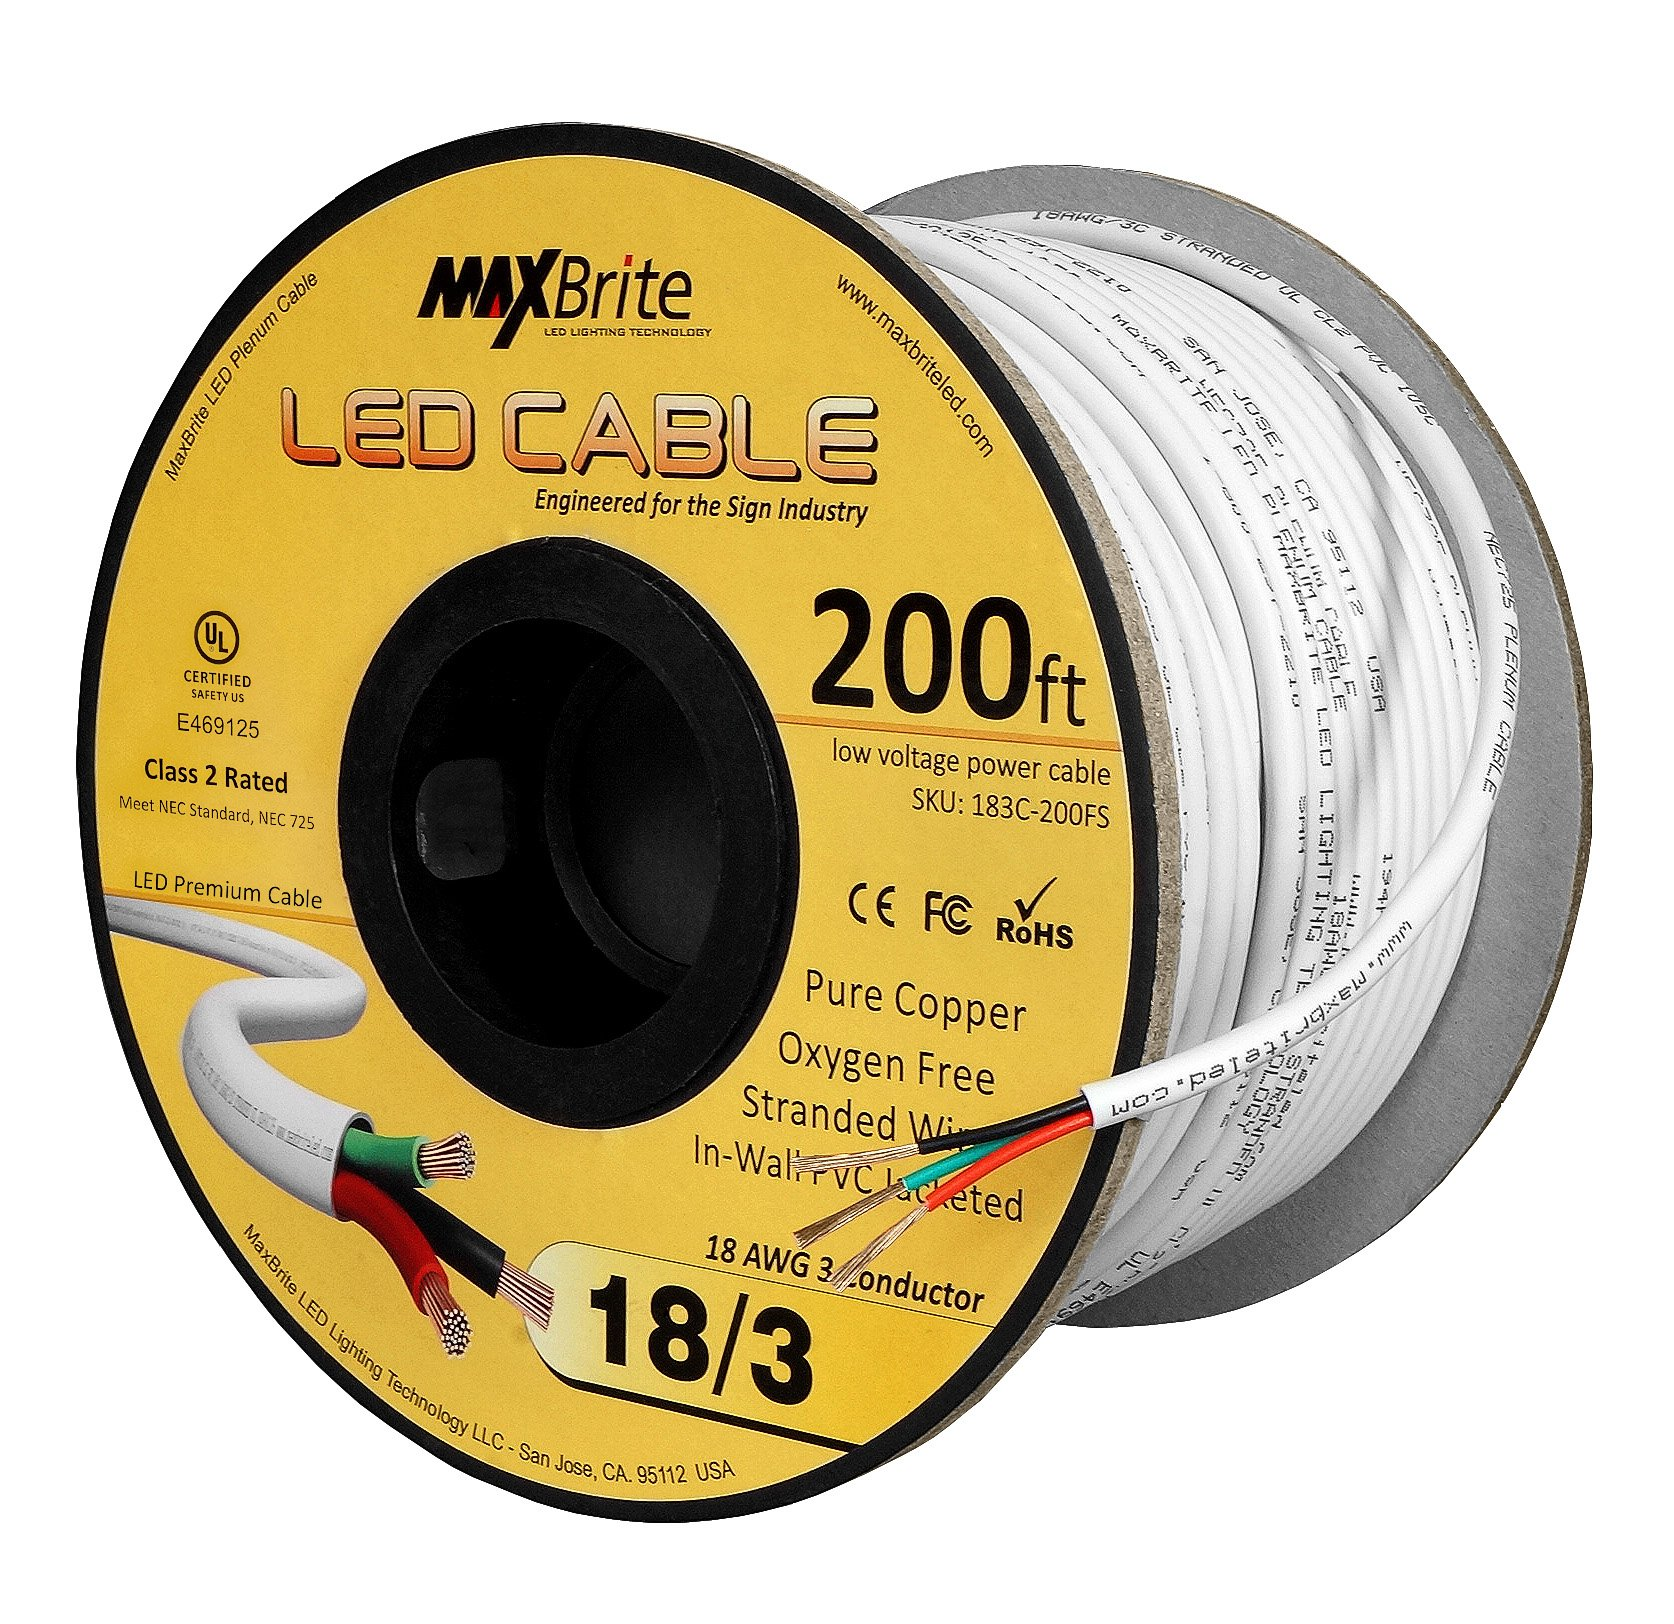 18AWG Low Voltage LED Cable 3 Conductor Jacketed in-Wall Speaker Wire UL/cUL Class 2 (200 ft Reel) by US LED Superstore